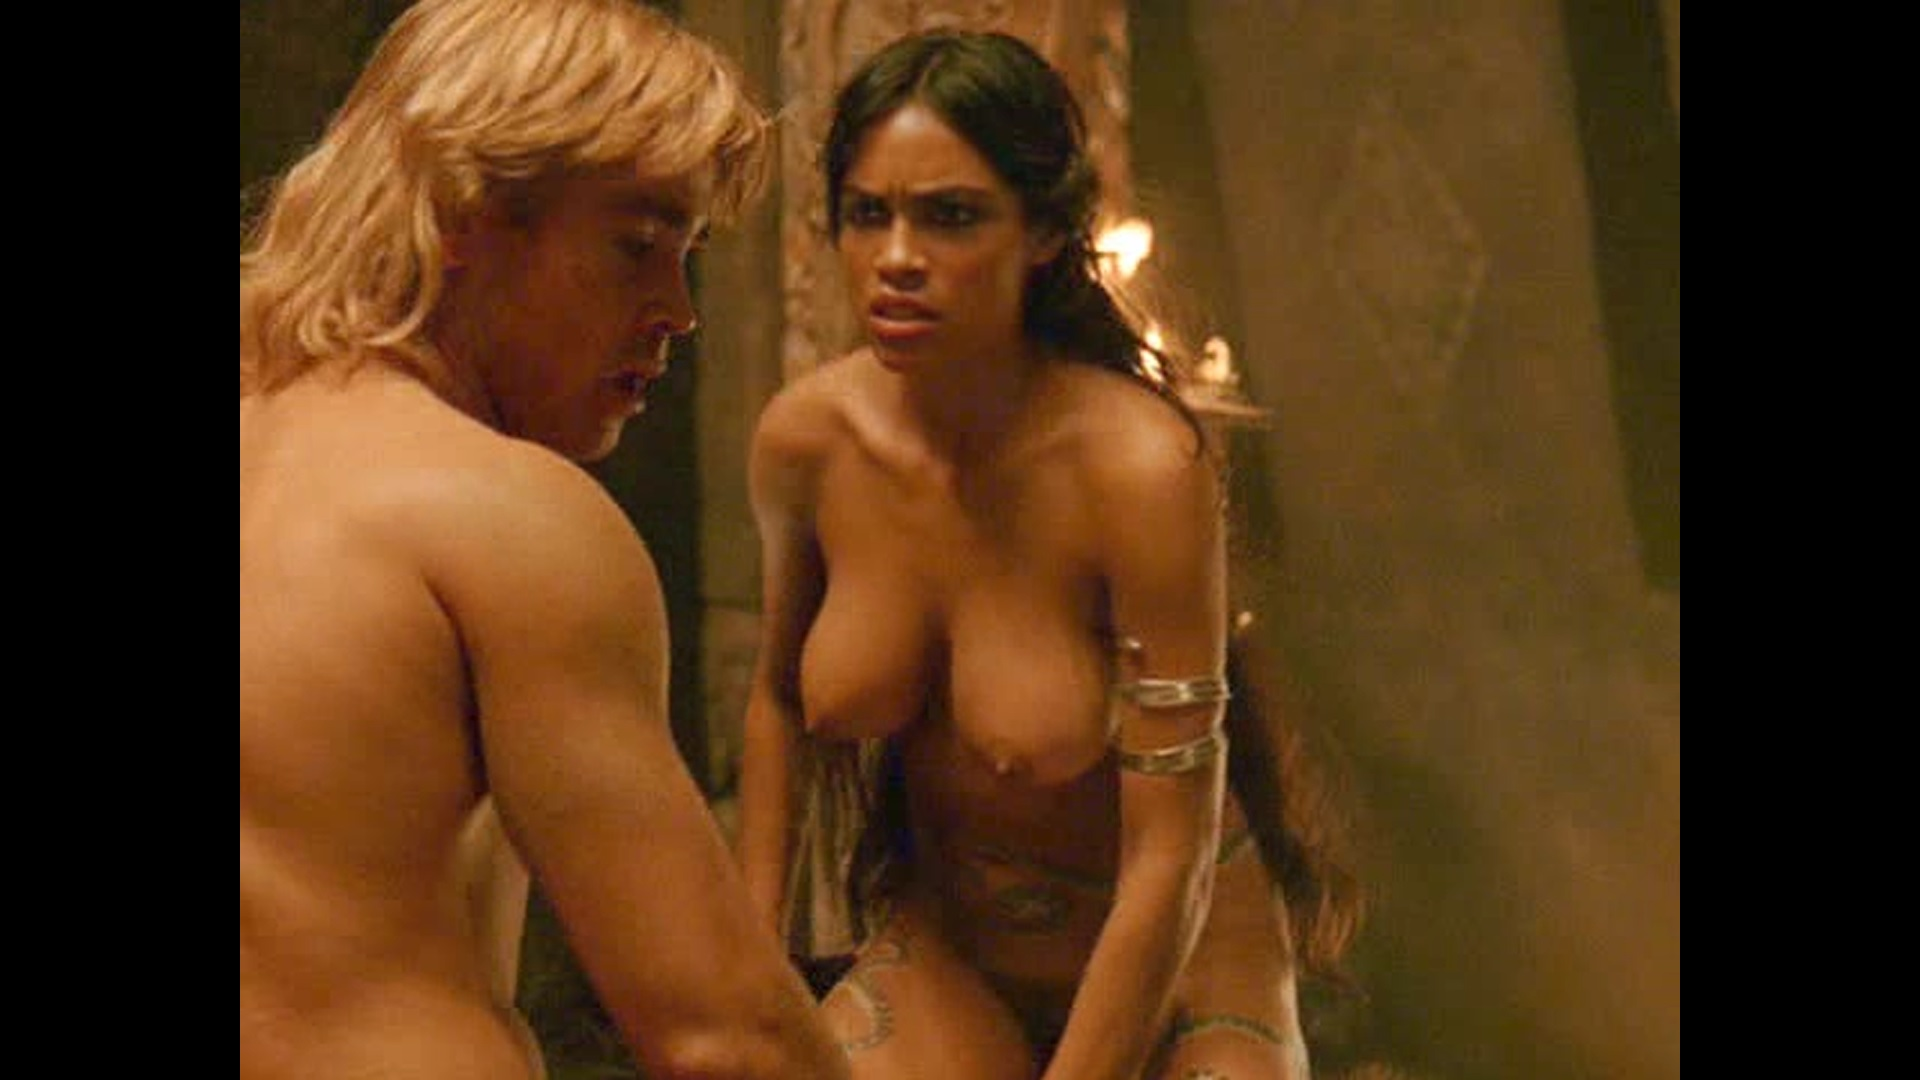 Alexander movie sex scene